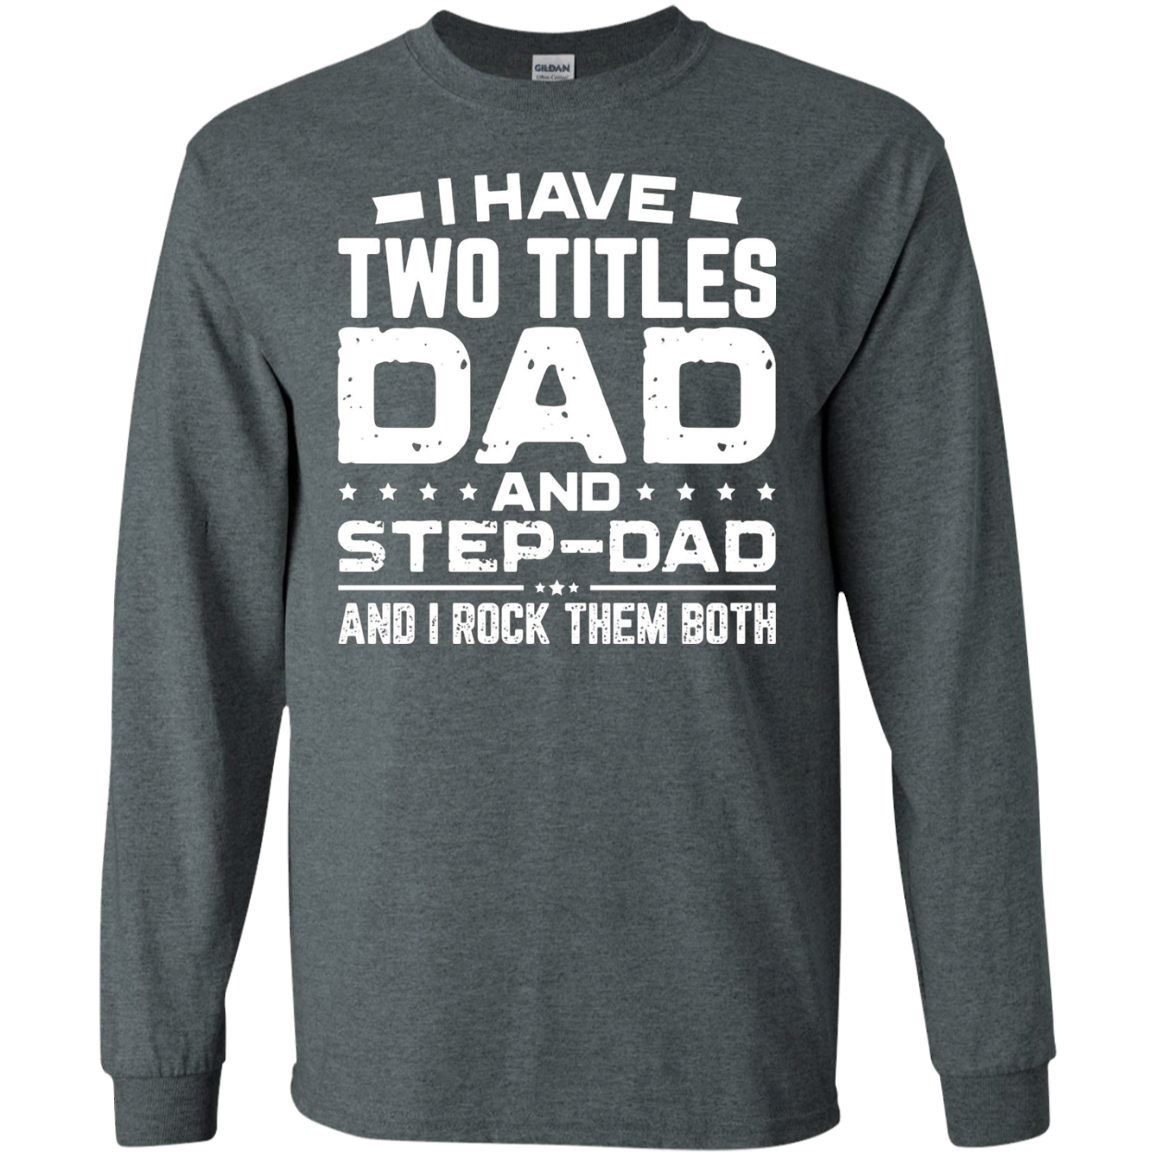 eff9debc I Have Two Titles Dad And Step-Dad Fathers Day T-Shirt Gift Father's ...